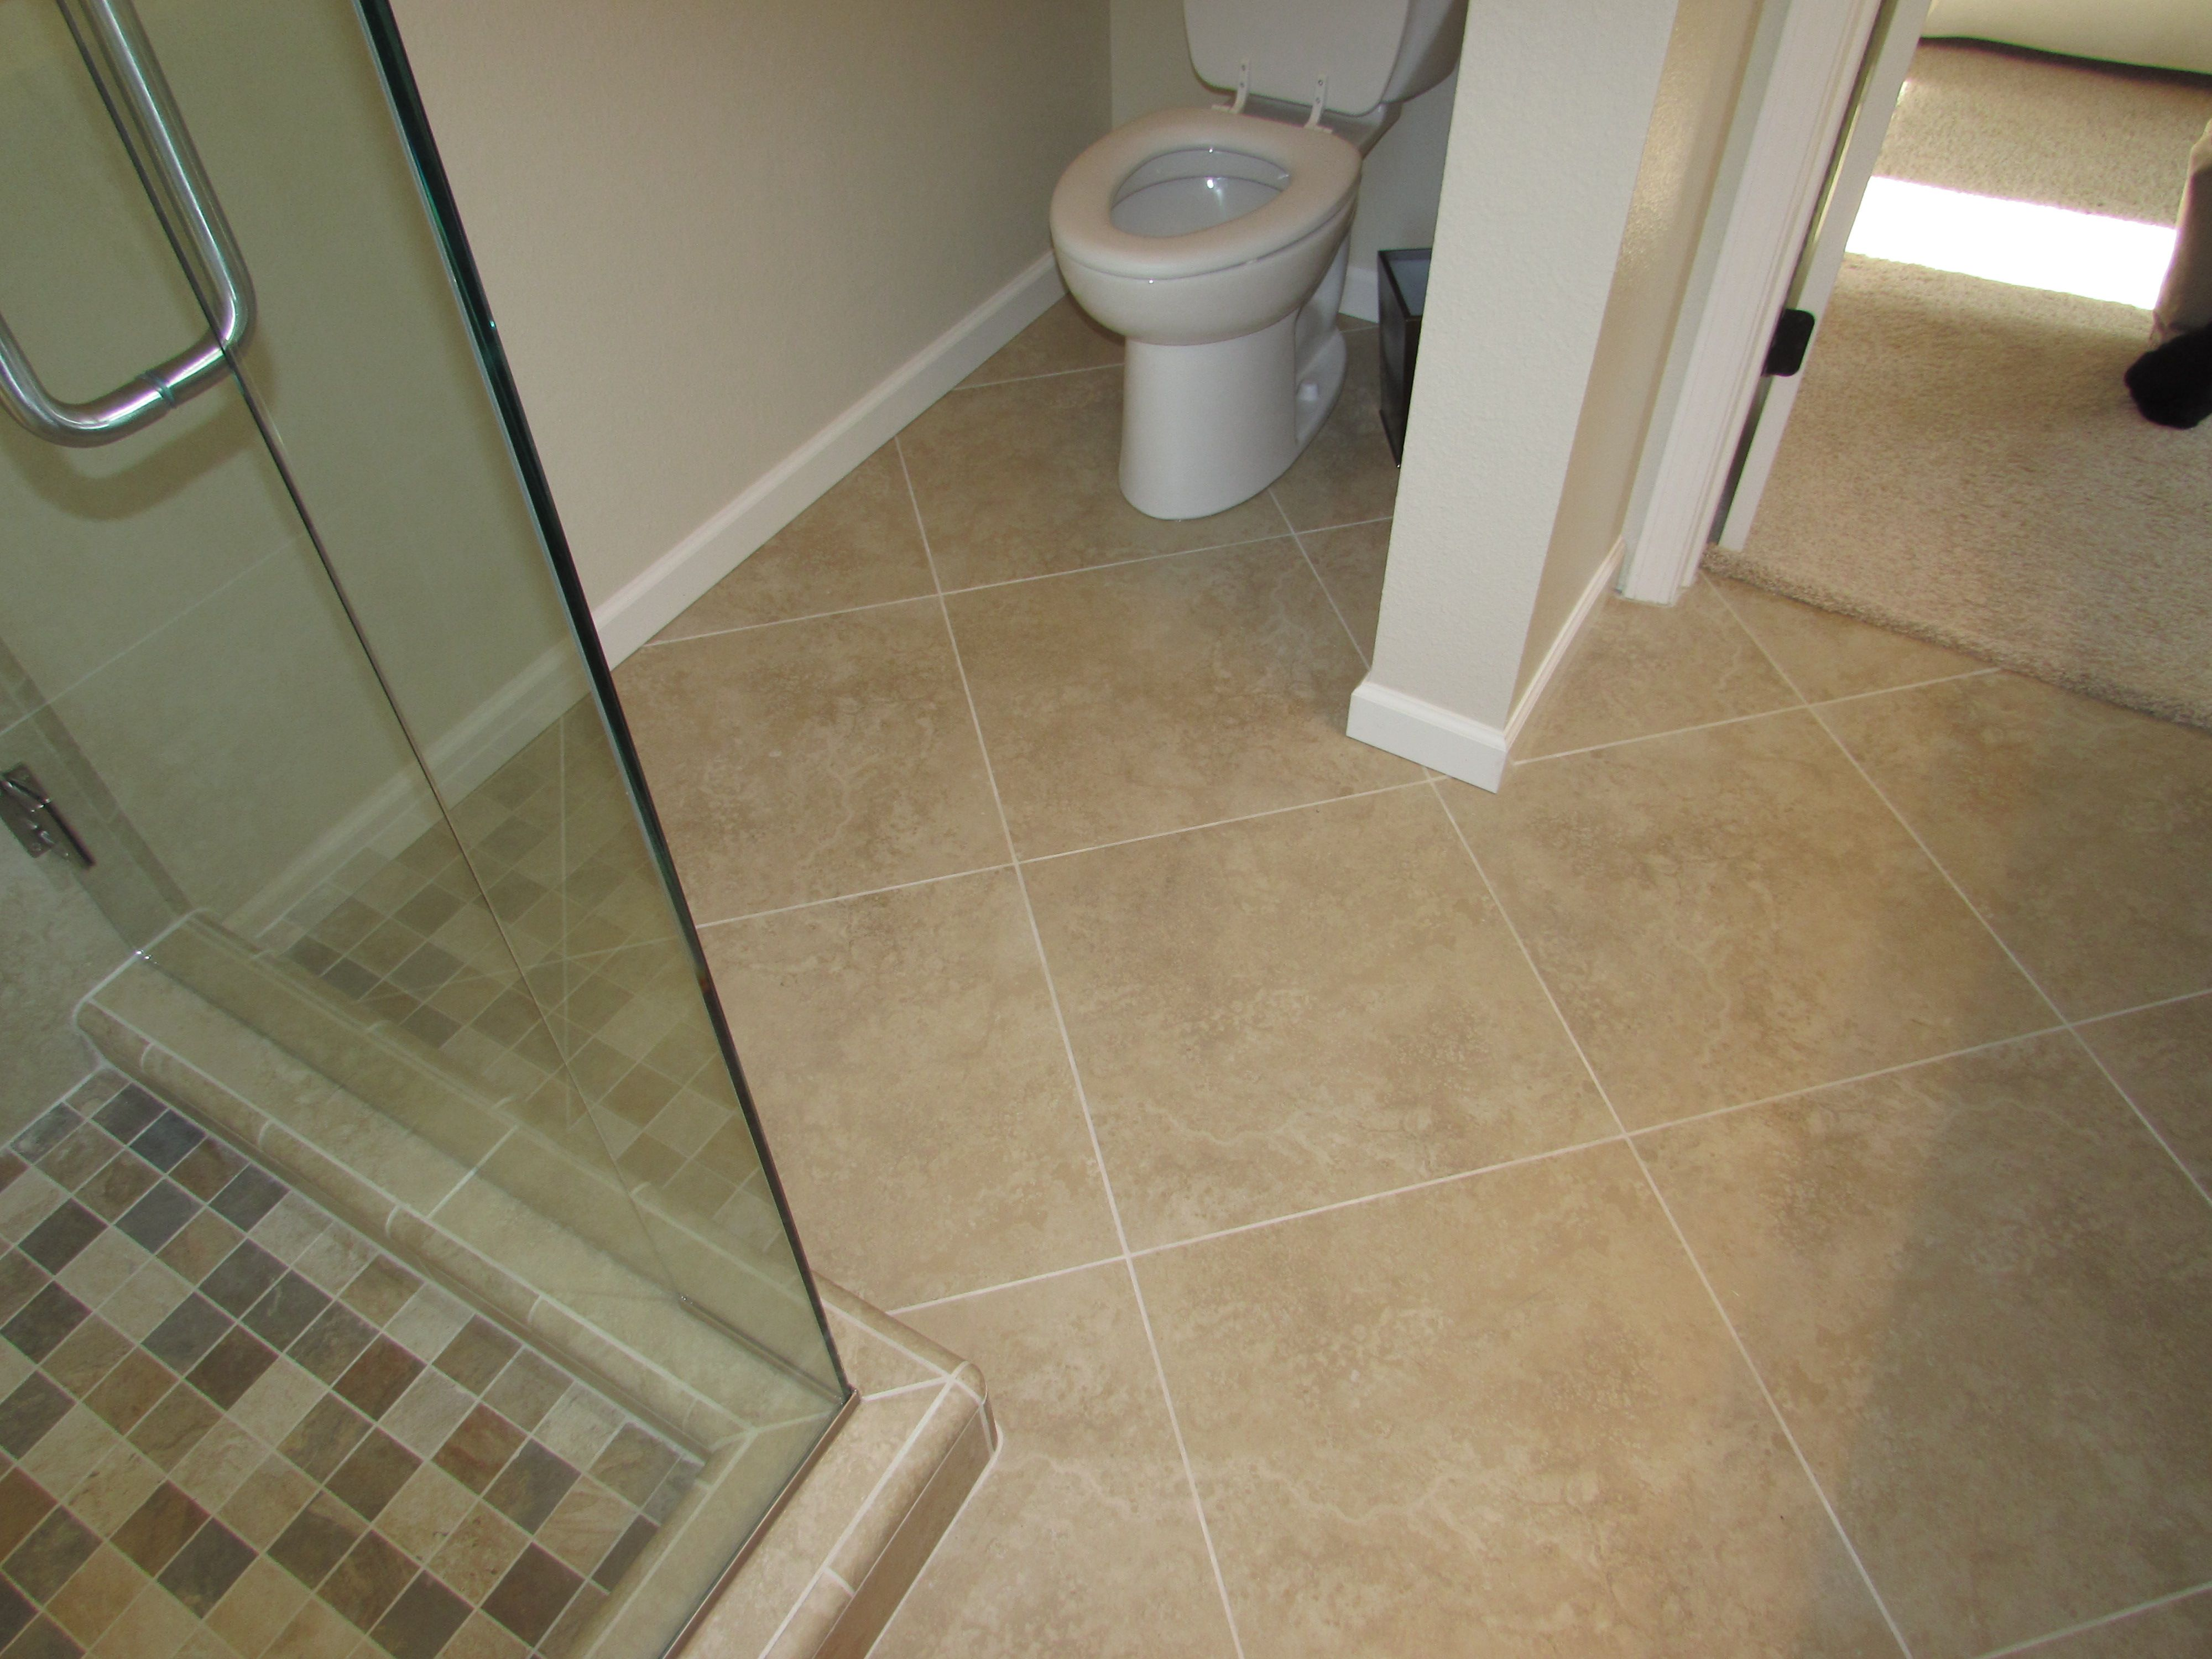 18 x 18 rectified porcelain floor on a diagonal pattern on a 18 x 18 rectified porcelain floor on a diagonal pattern on a bathroom floor with a dailygadgetfo Gallery